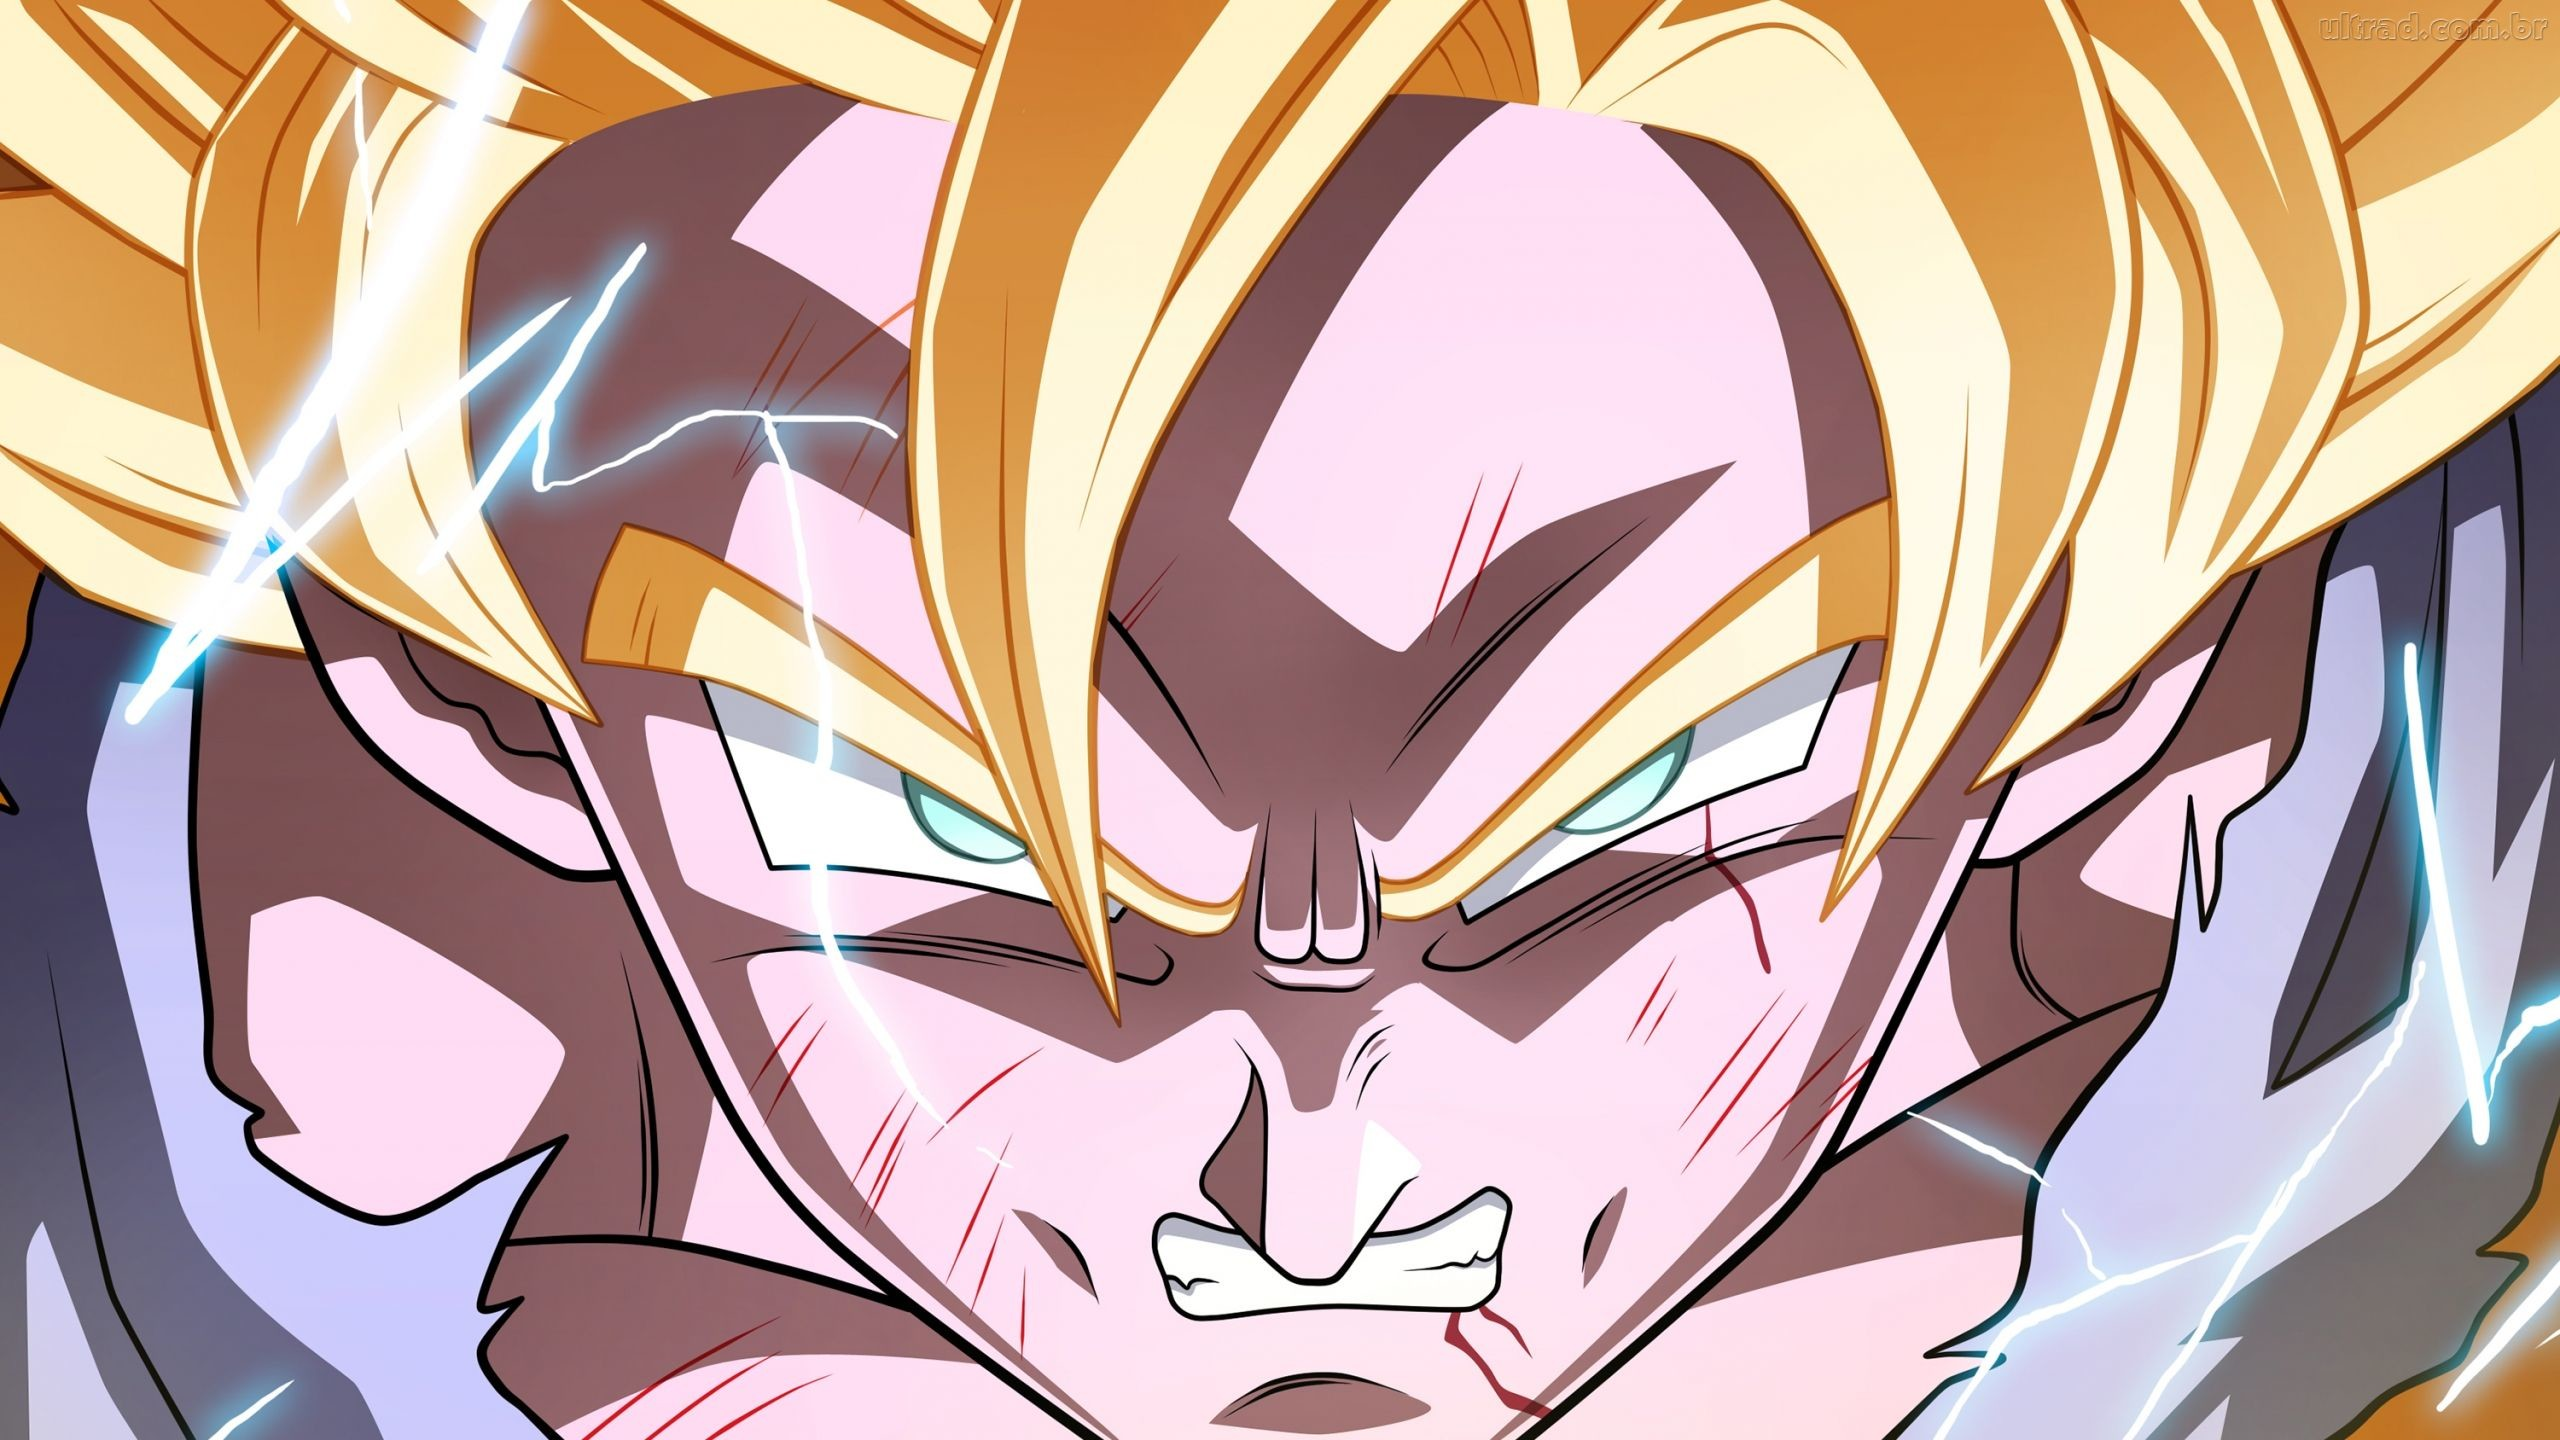 Super Saiyan 2 Goku, pissed off. I didn't have much time on my hands to do  it, but it was worth the time I spent on it, good fun.